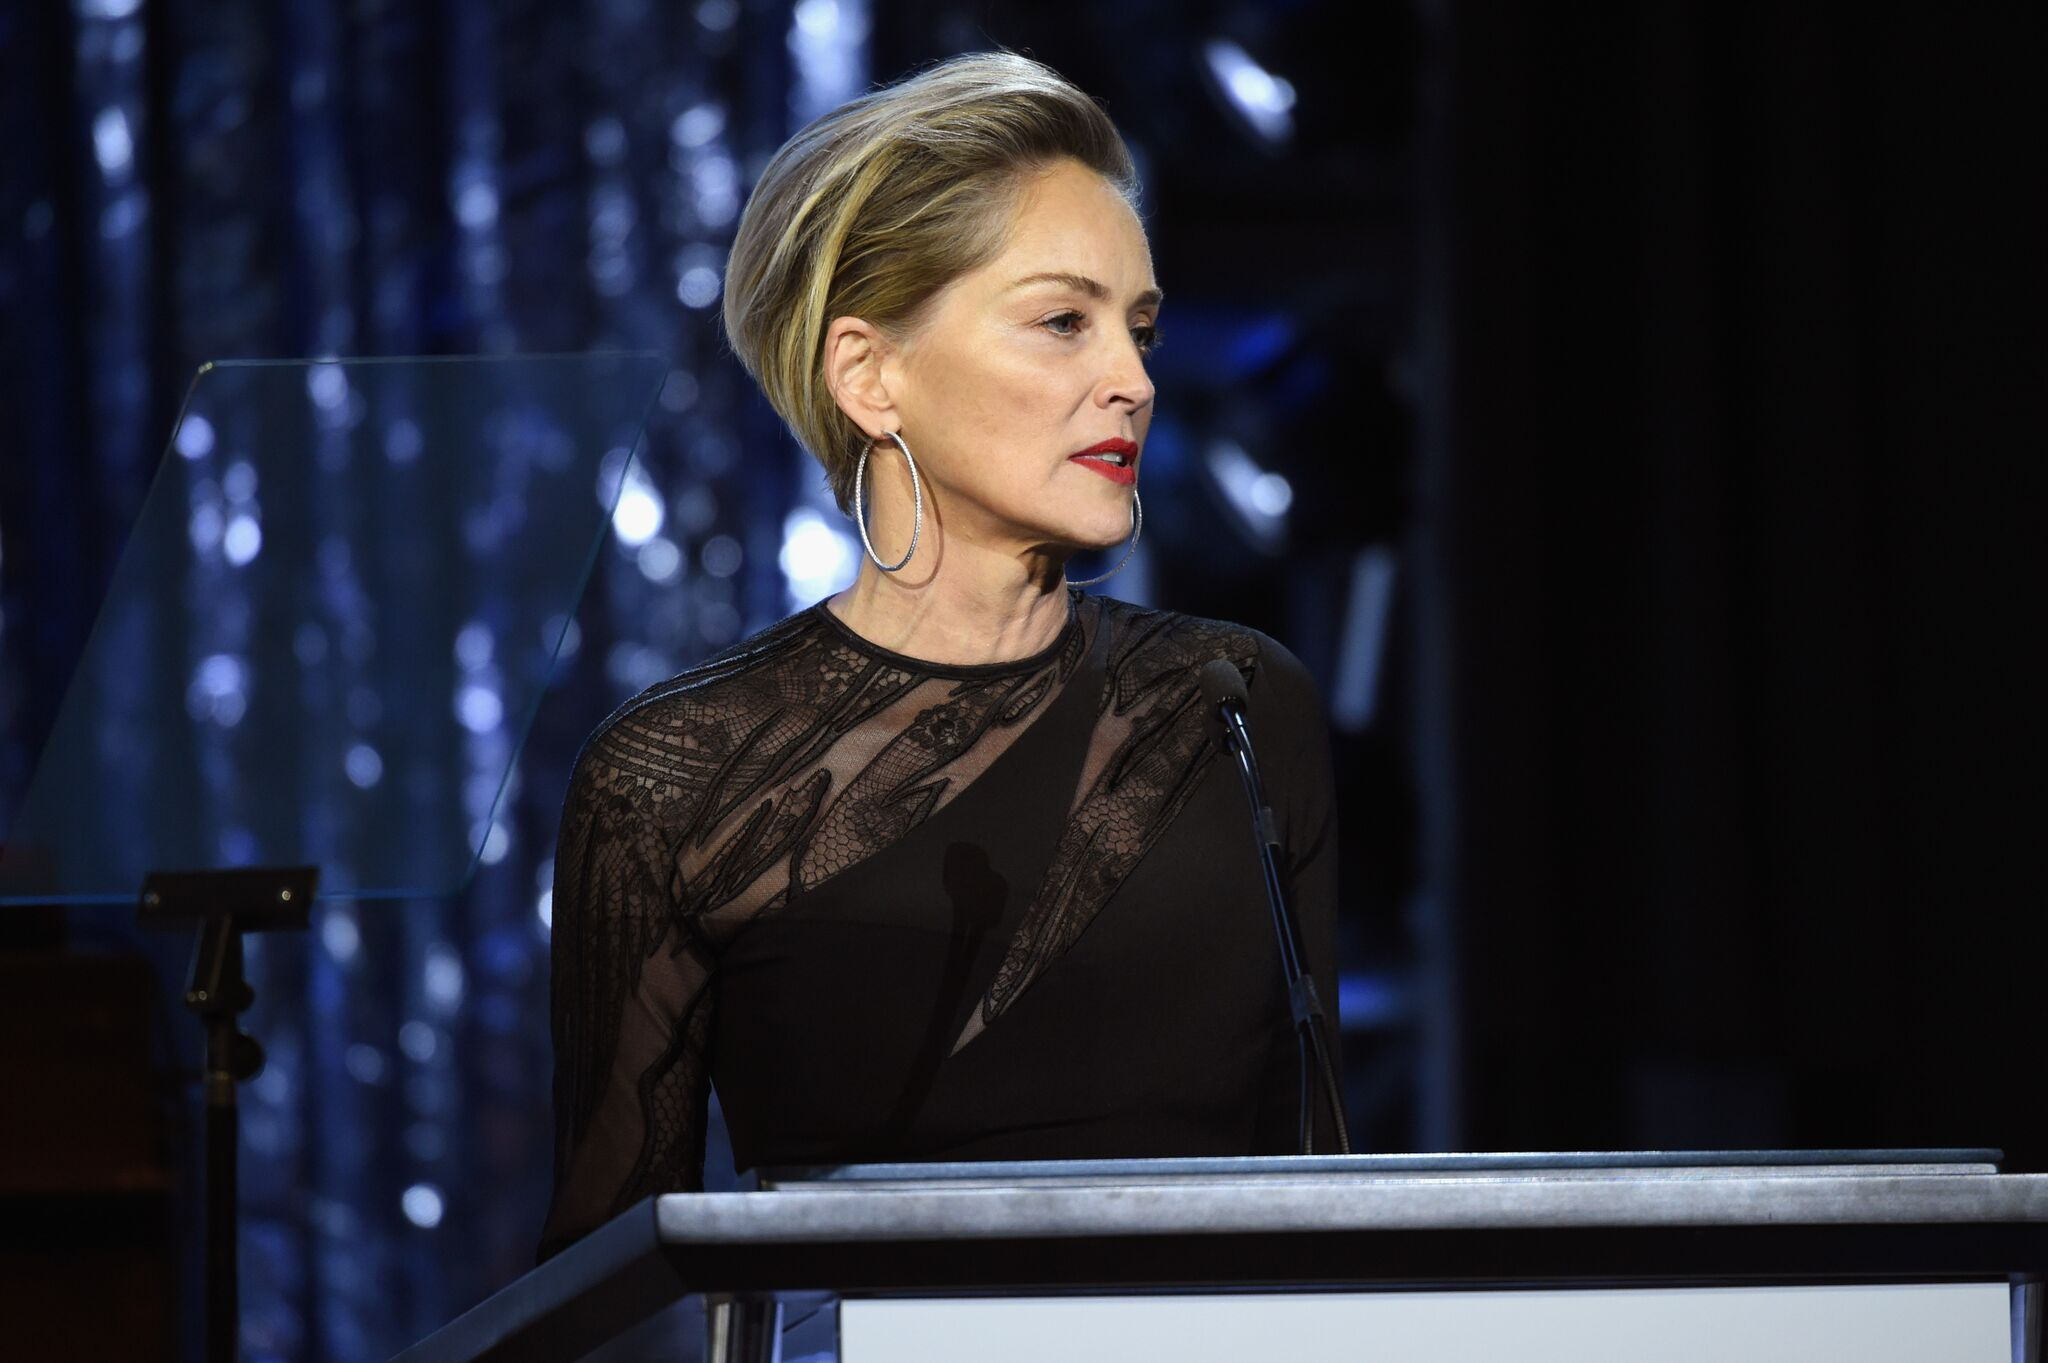 Image Credits: Getty Images / Sharon Stone speaks onstage the 25th Annual Elton John AIDS Foundation's Academy Awards Viewing Party